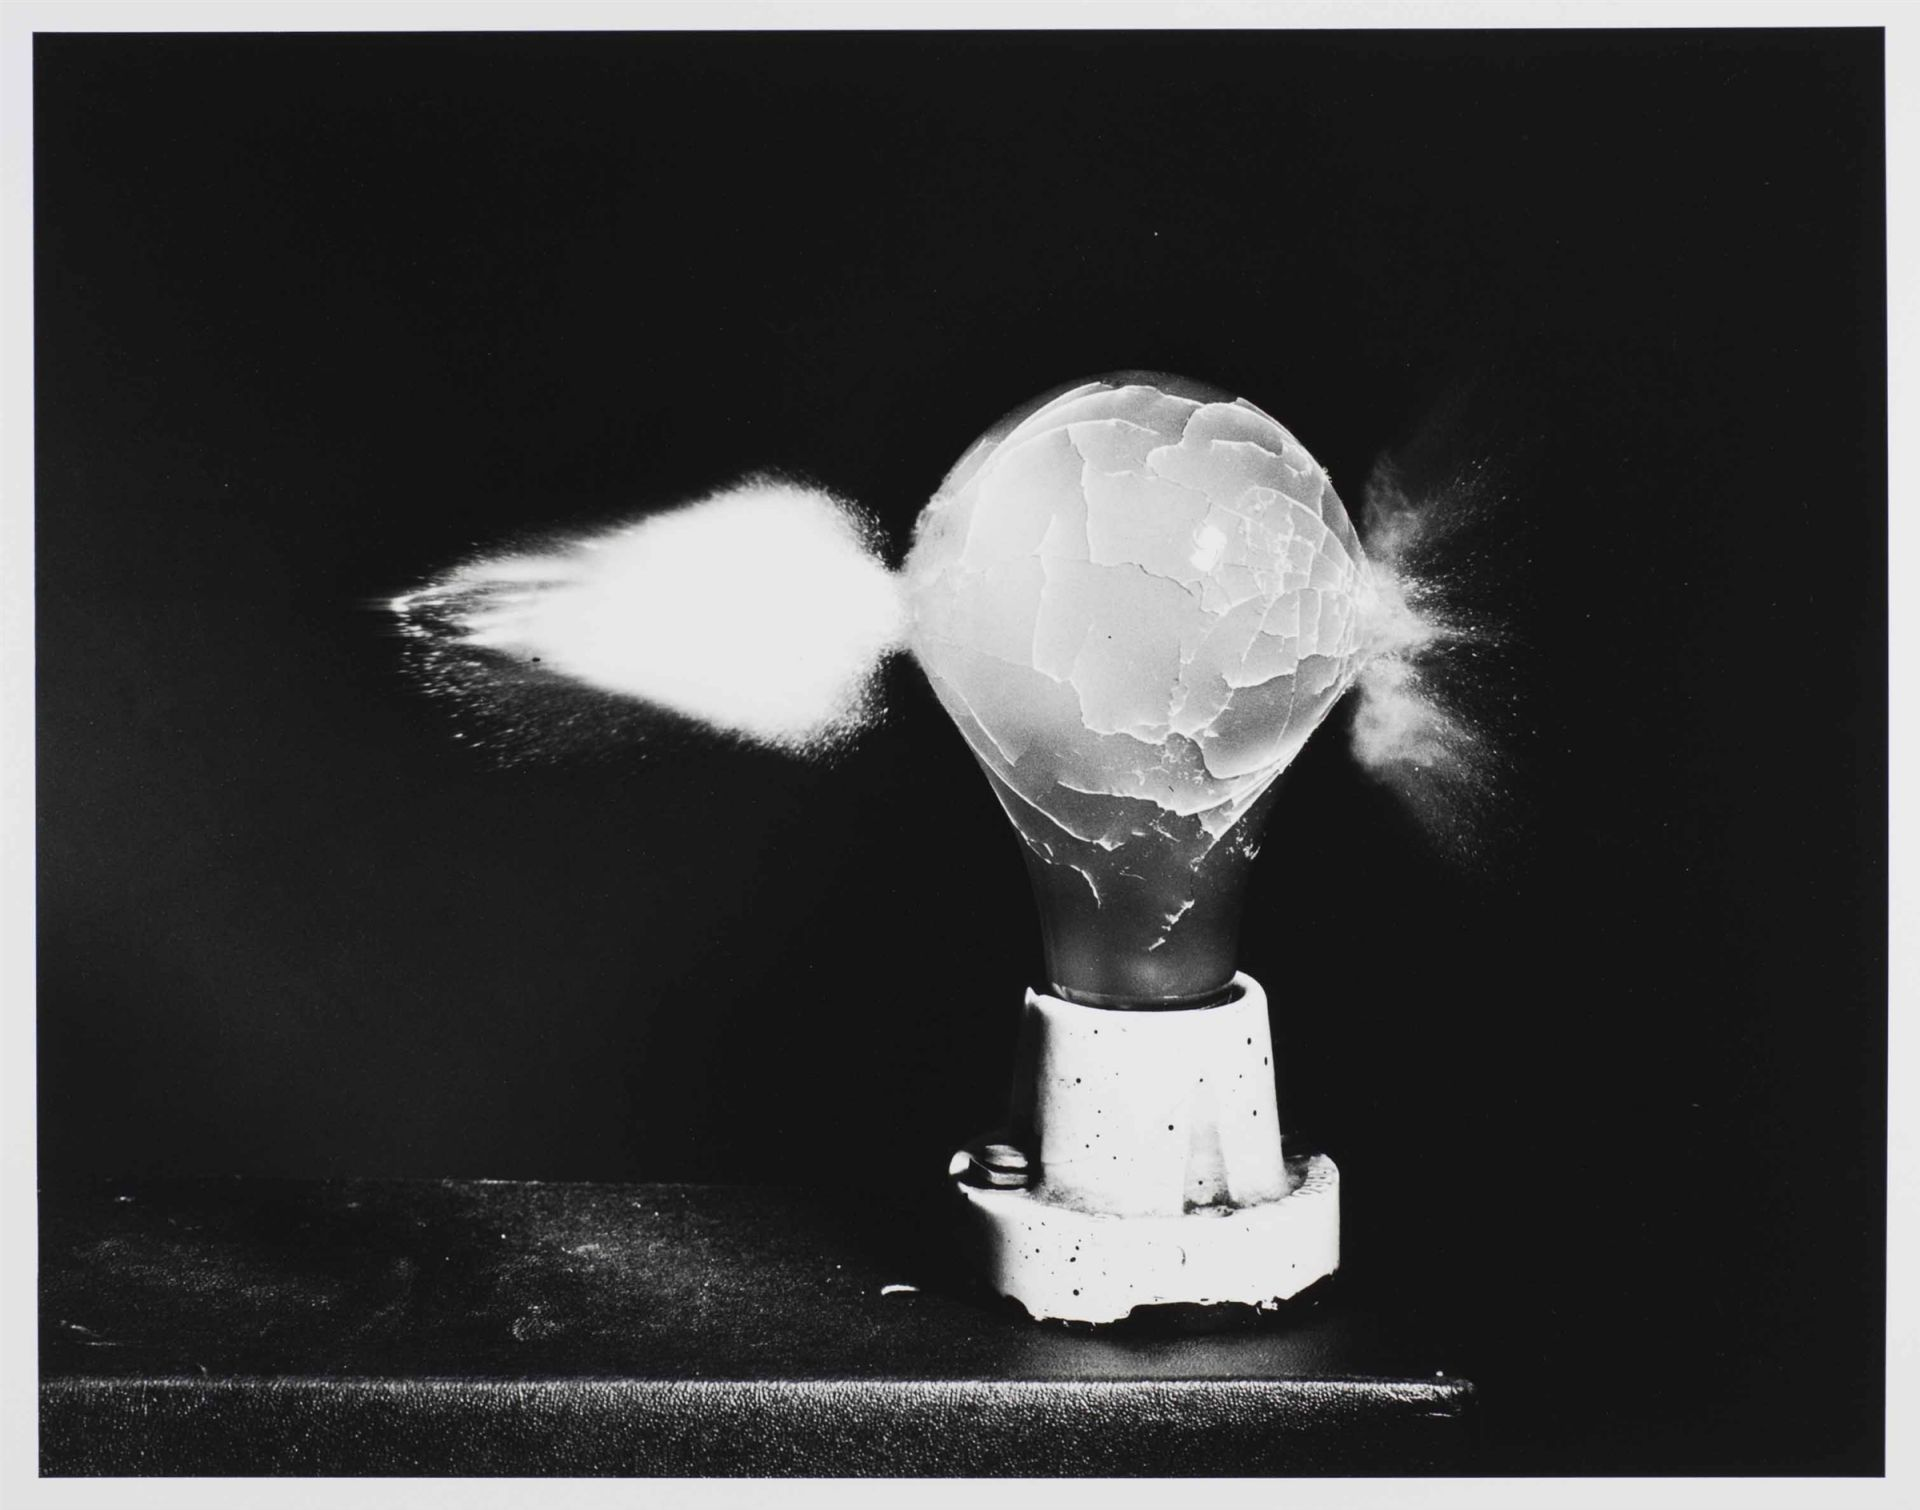 <i>Death of Lightbulb,</i> ca. 1935<br> gelatin silver print<br> 16 x 20 inches<br> Death of a Light Bulb is from a series of four photographs, one of which is on view in this exhibition. It reveals what happens when a .30-caliber bullet traveling at approximately 2,700 feet per second (over 1,800 miles per hour) encounters an electric light bulb. Whole light bulbs and complete face cards or aces were rarely to be found in the MIT Strobe Lab.